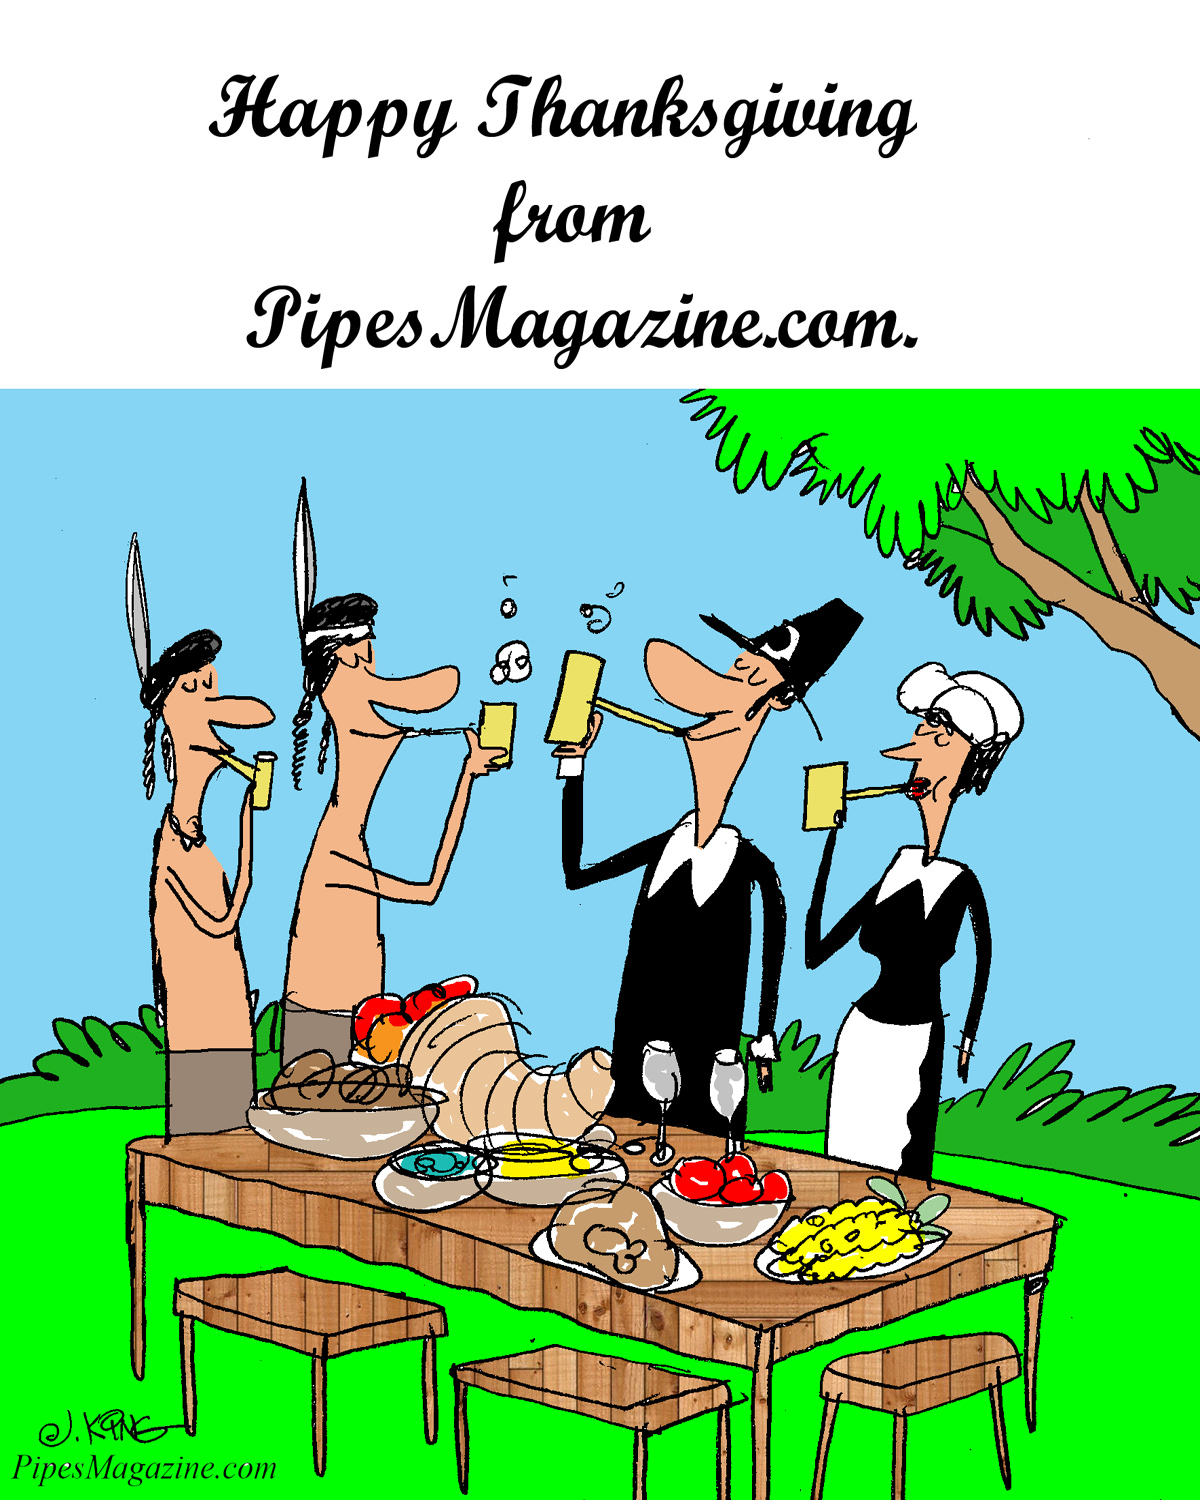 Fullsize Of Happy Thanksgiving Funny